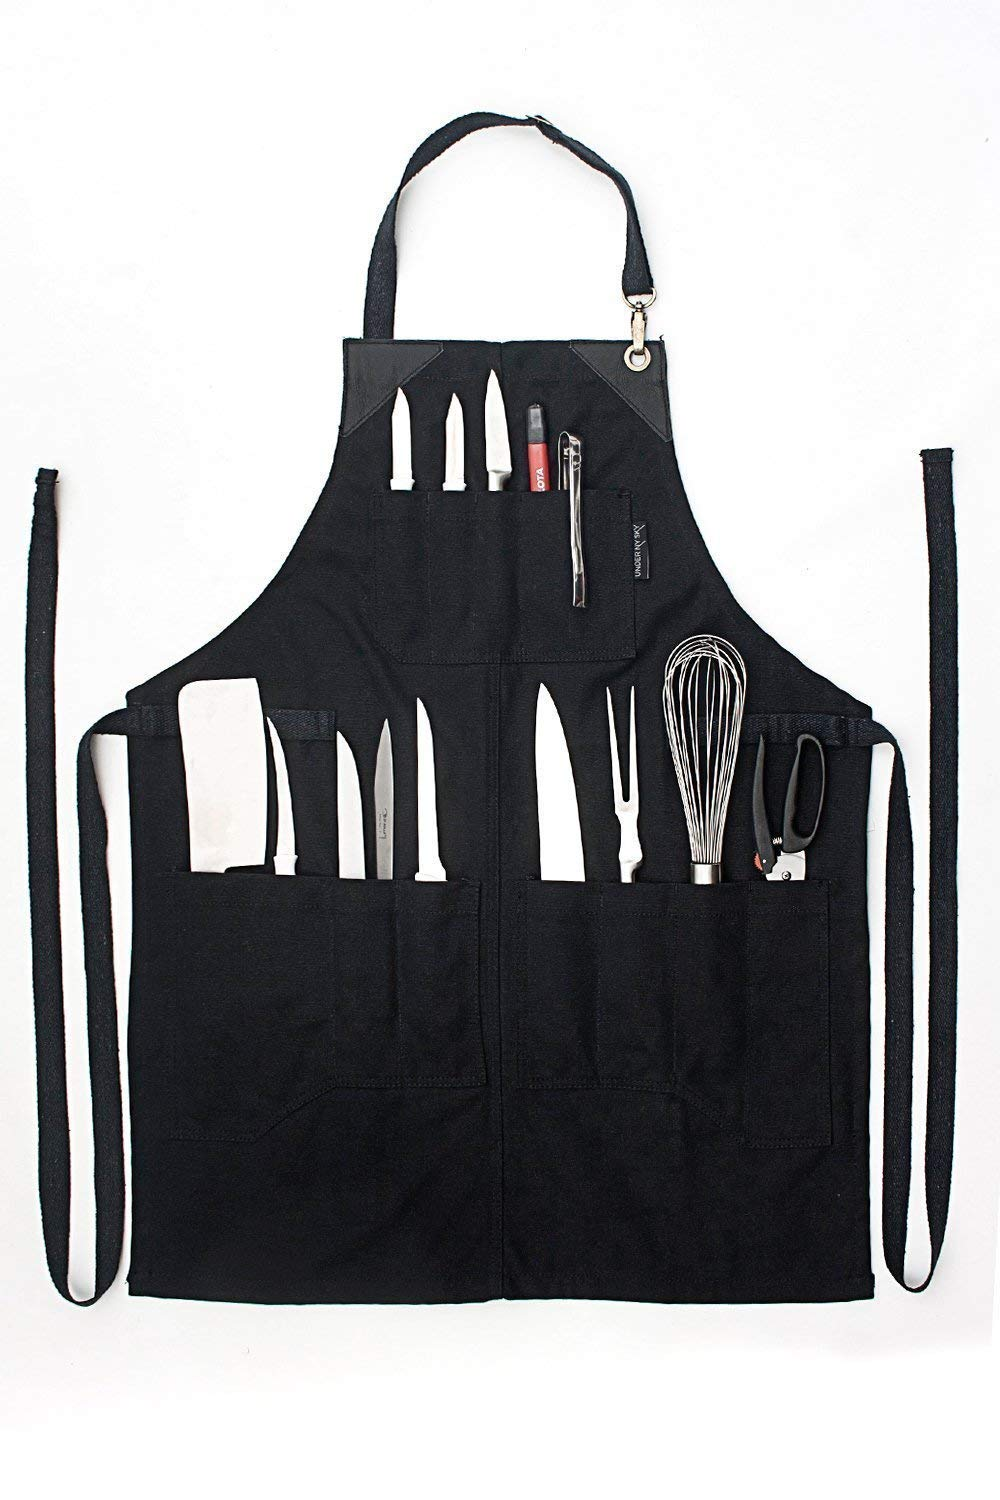 Knife-Roll Ebony Black Apron – Heavy-Duty Canvas, Leather Reinforcement – Adjustable for Men and Women – Pro Chef, Barbecue, Butcher, Bartender, Woodworker, Tool Aprons